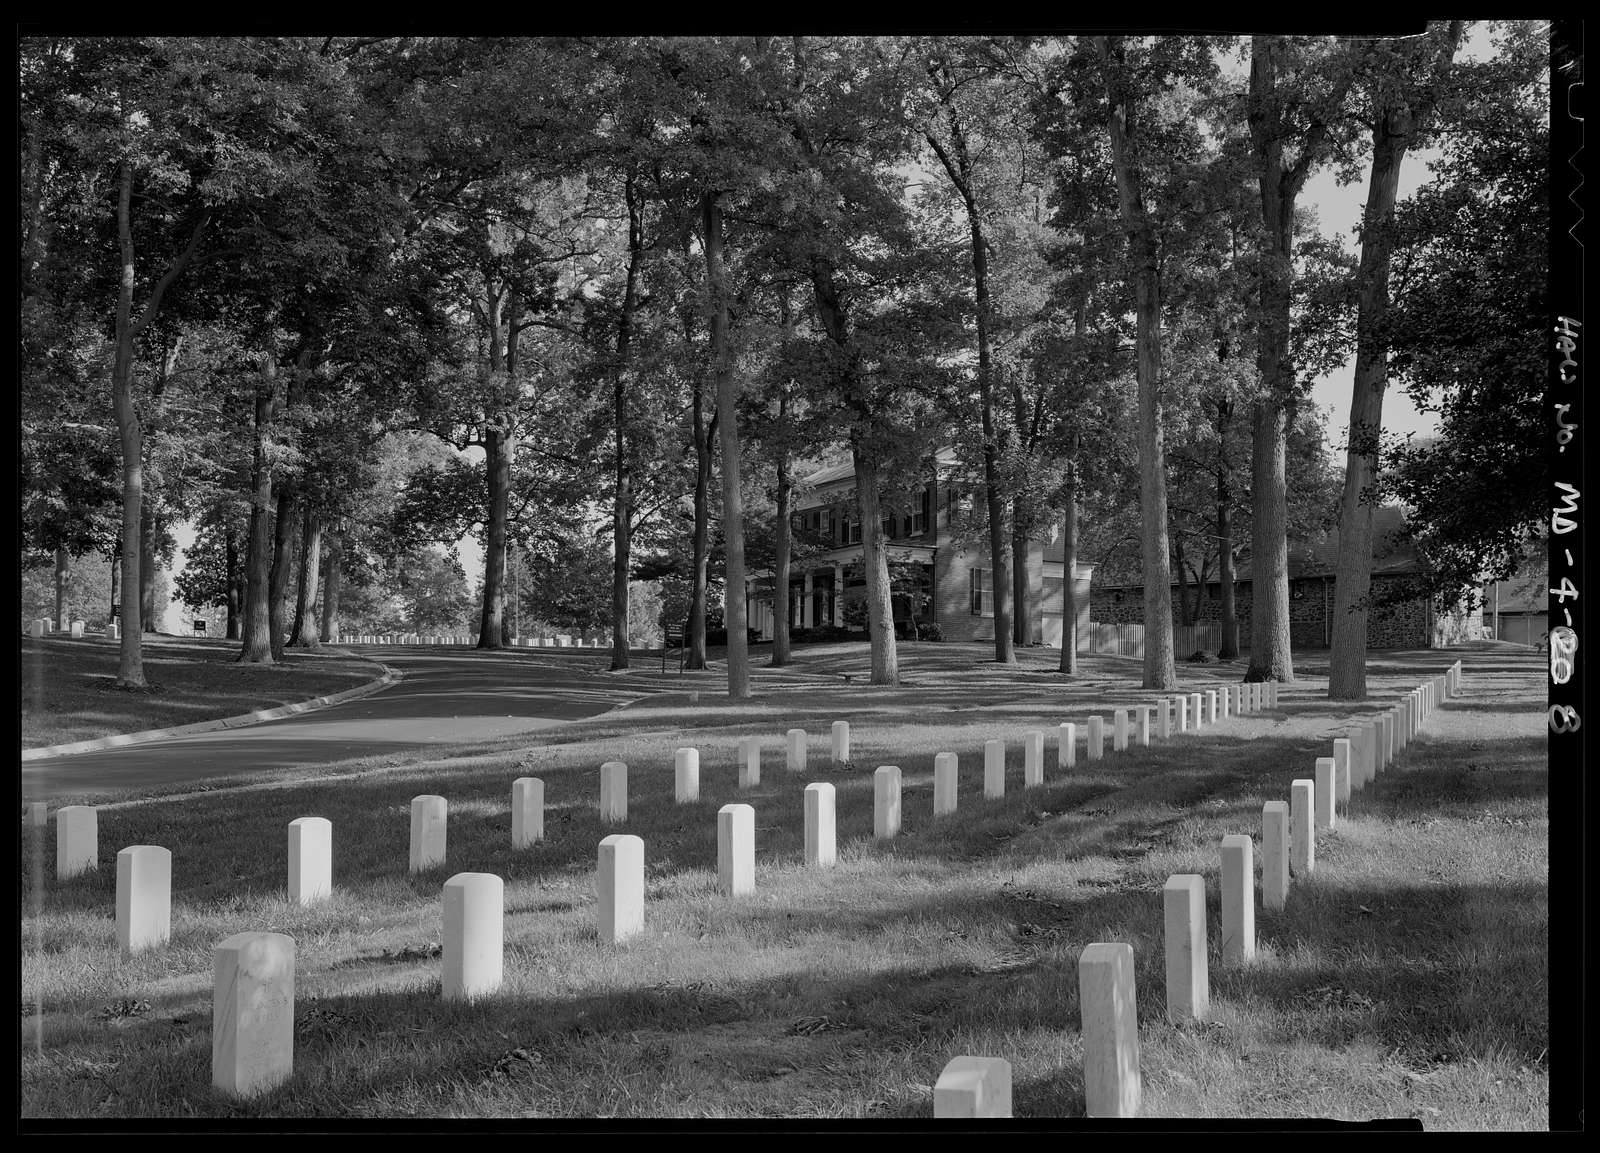 Baltimore National Cemetery, 5501 Frederick Avenue, Baltimore, Independent City, MD